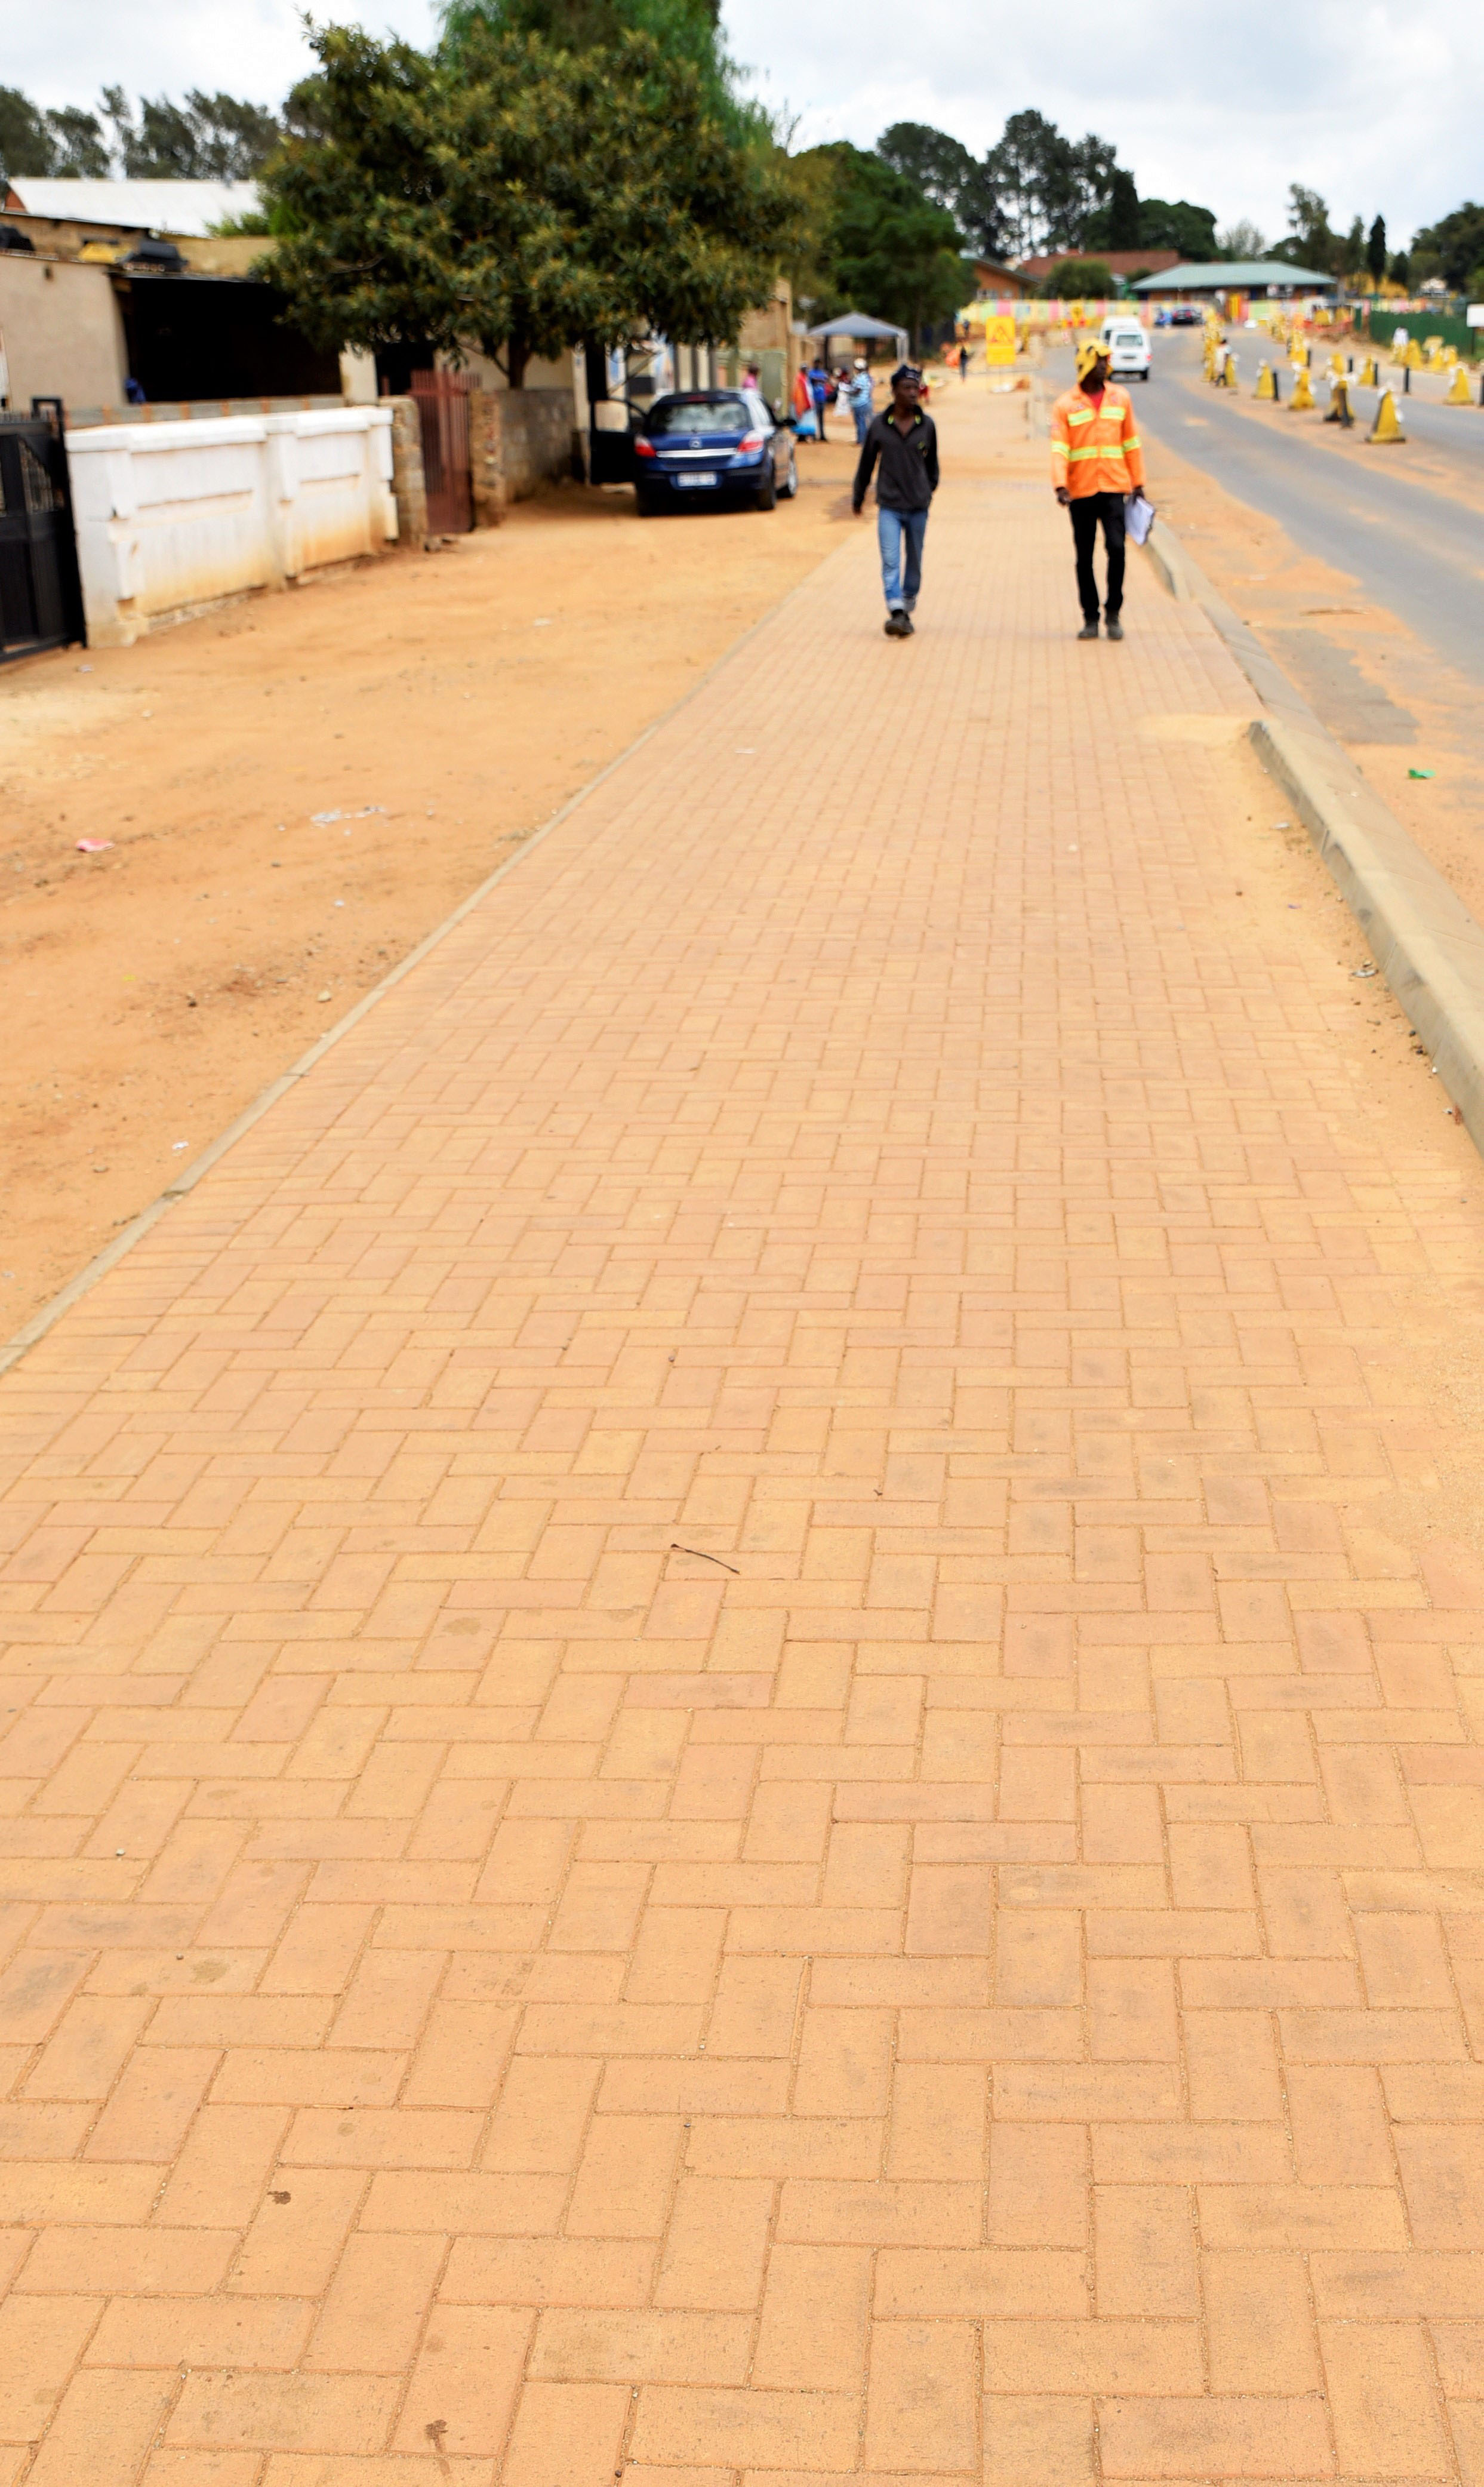 Pavements in Tembisa have been paved in Corobrik Champagne clay pavers in a Herringbone pattern.